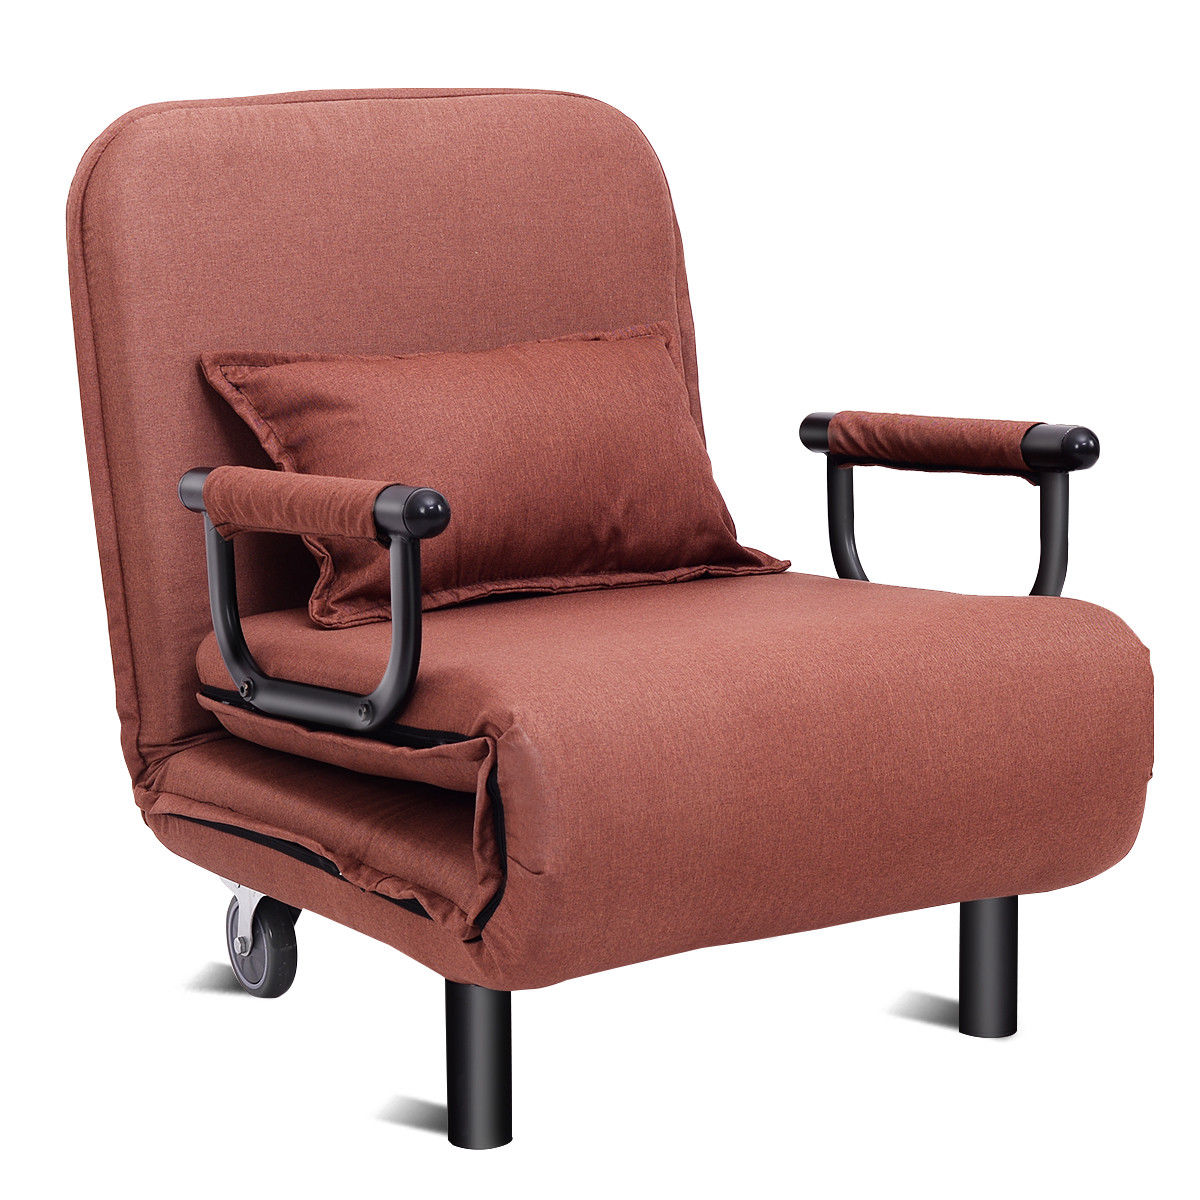 Costway Convertible Sofa Bed Folding Arm Chair Sleeper Leisure Recliner Lounge Couch